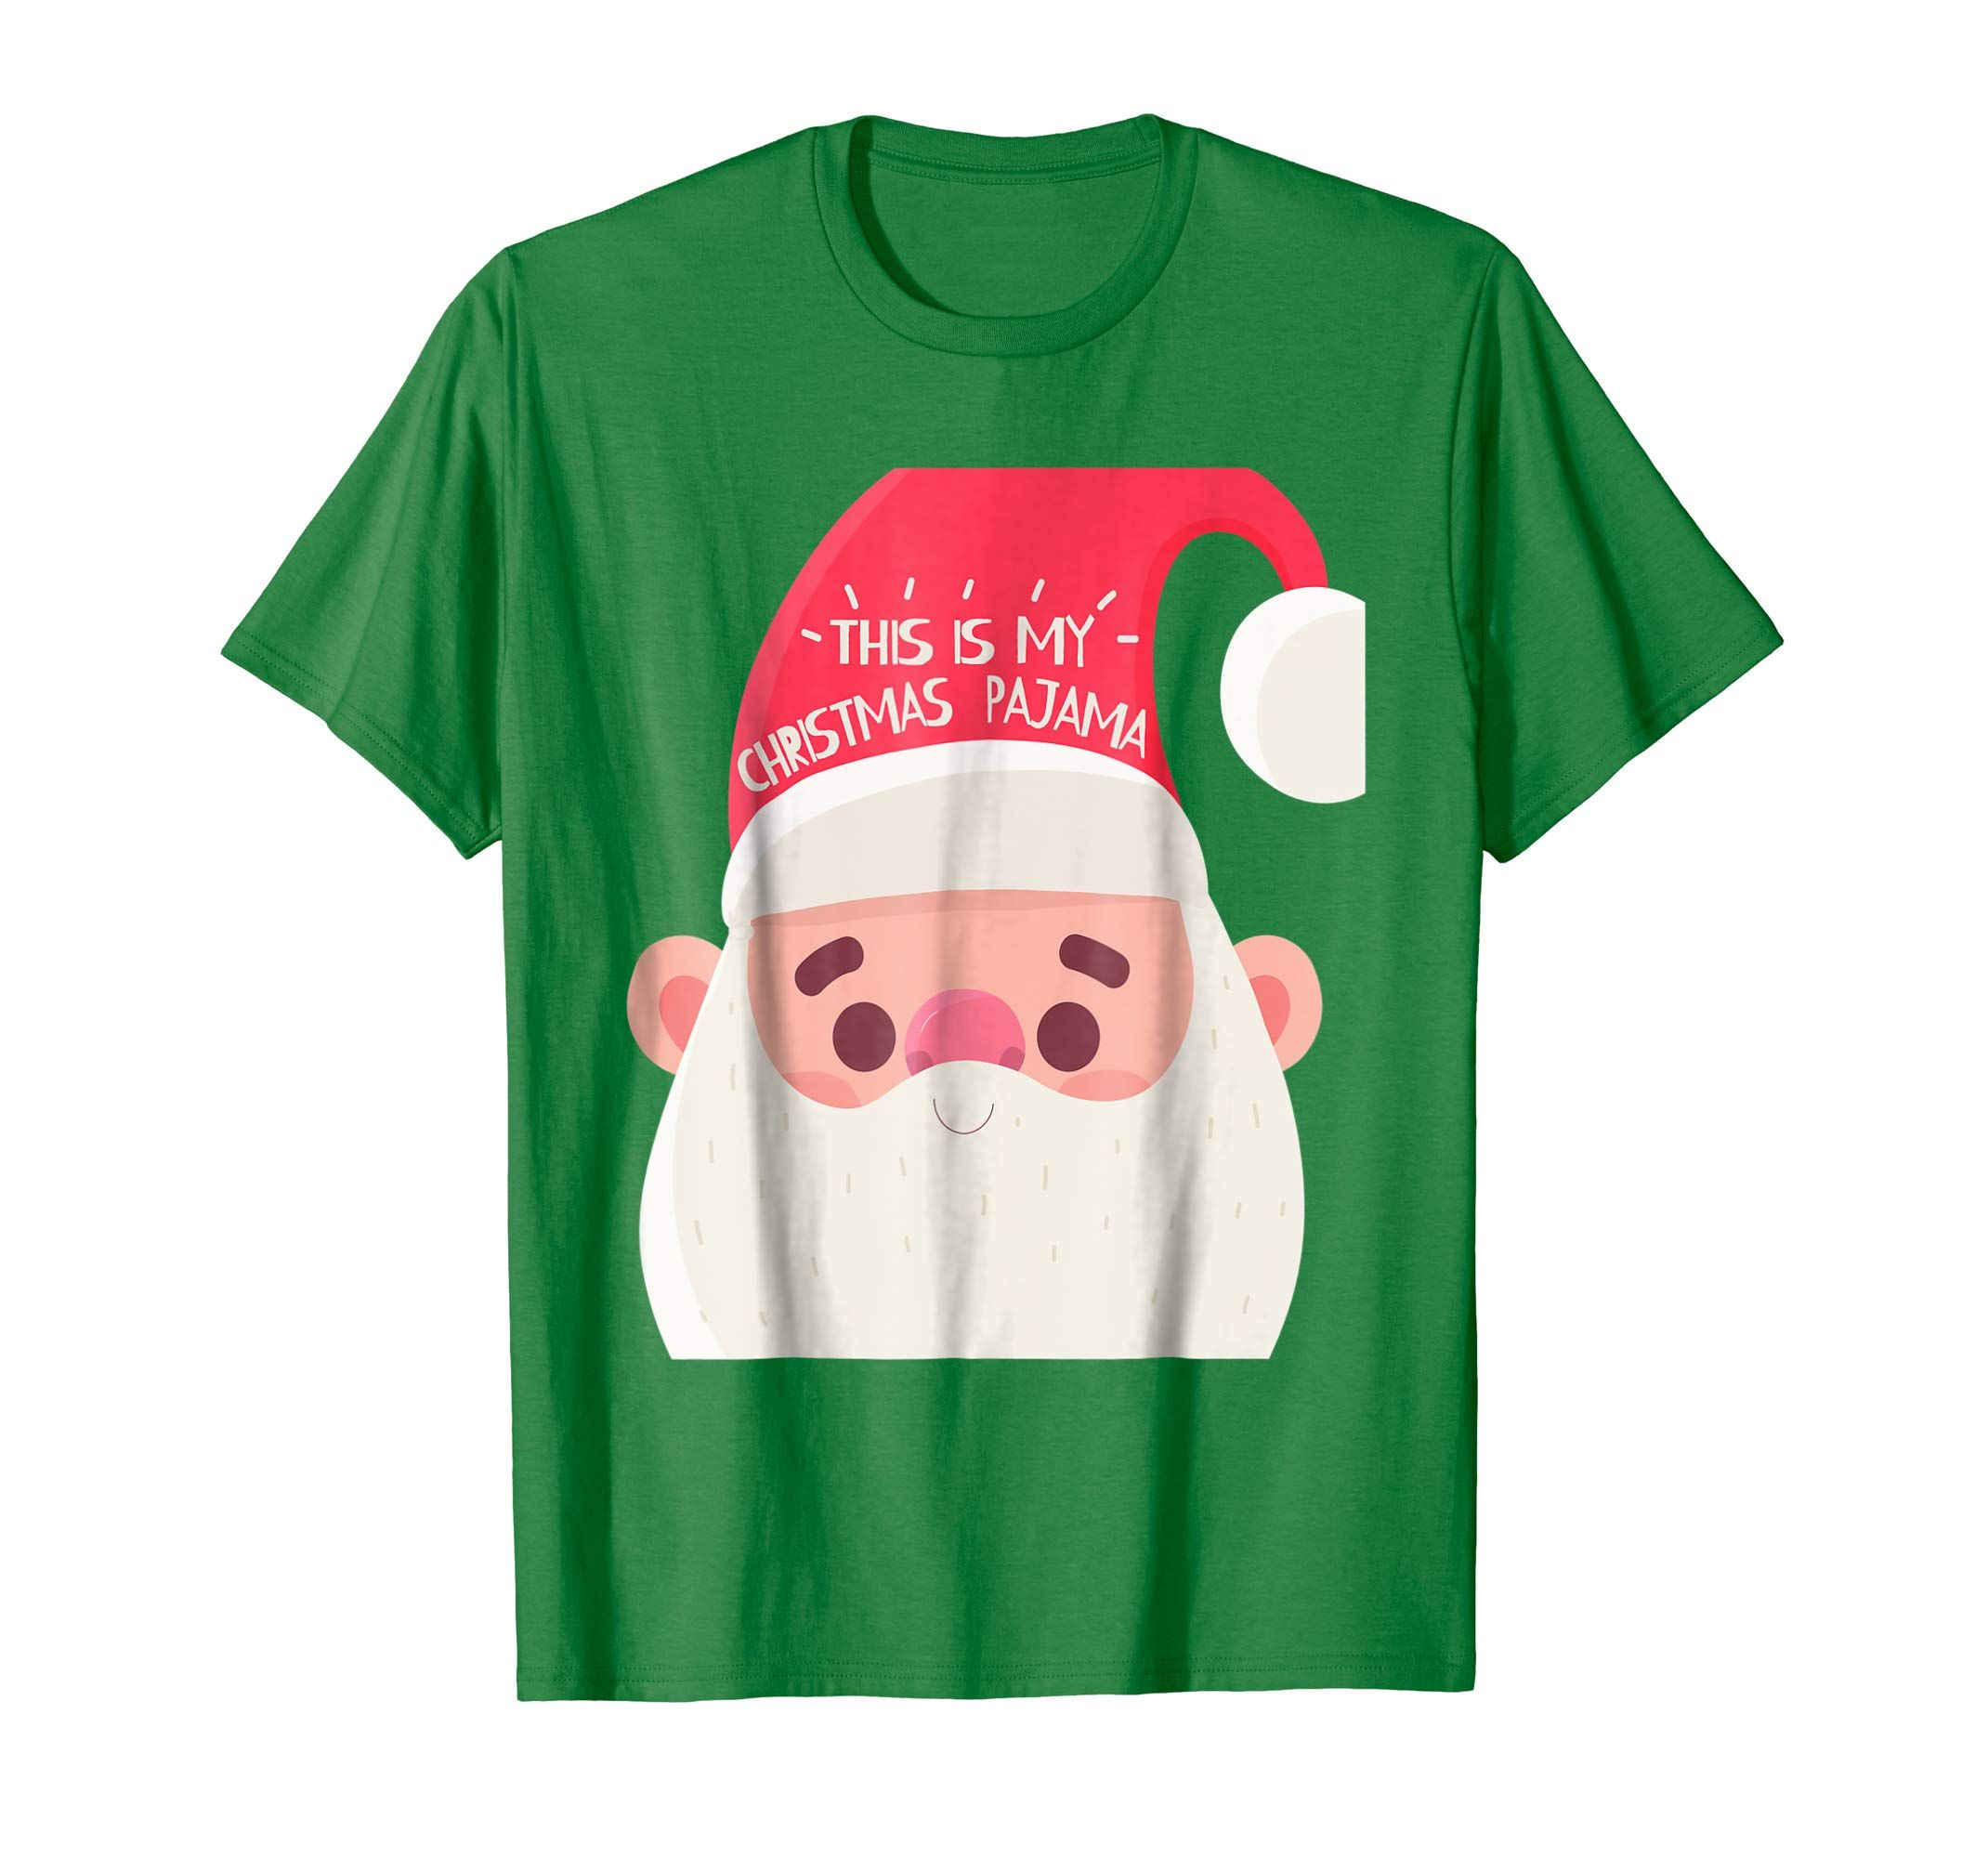 Santa Claus Loves These Christmas Pajamas! This Is My